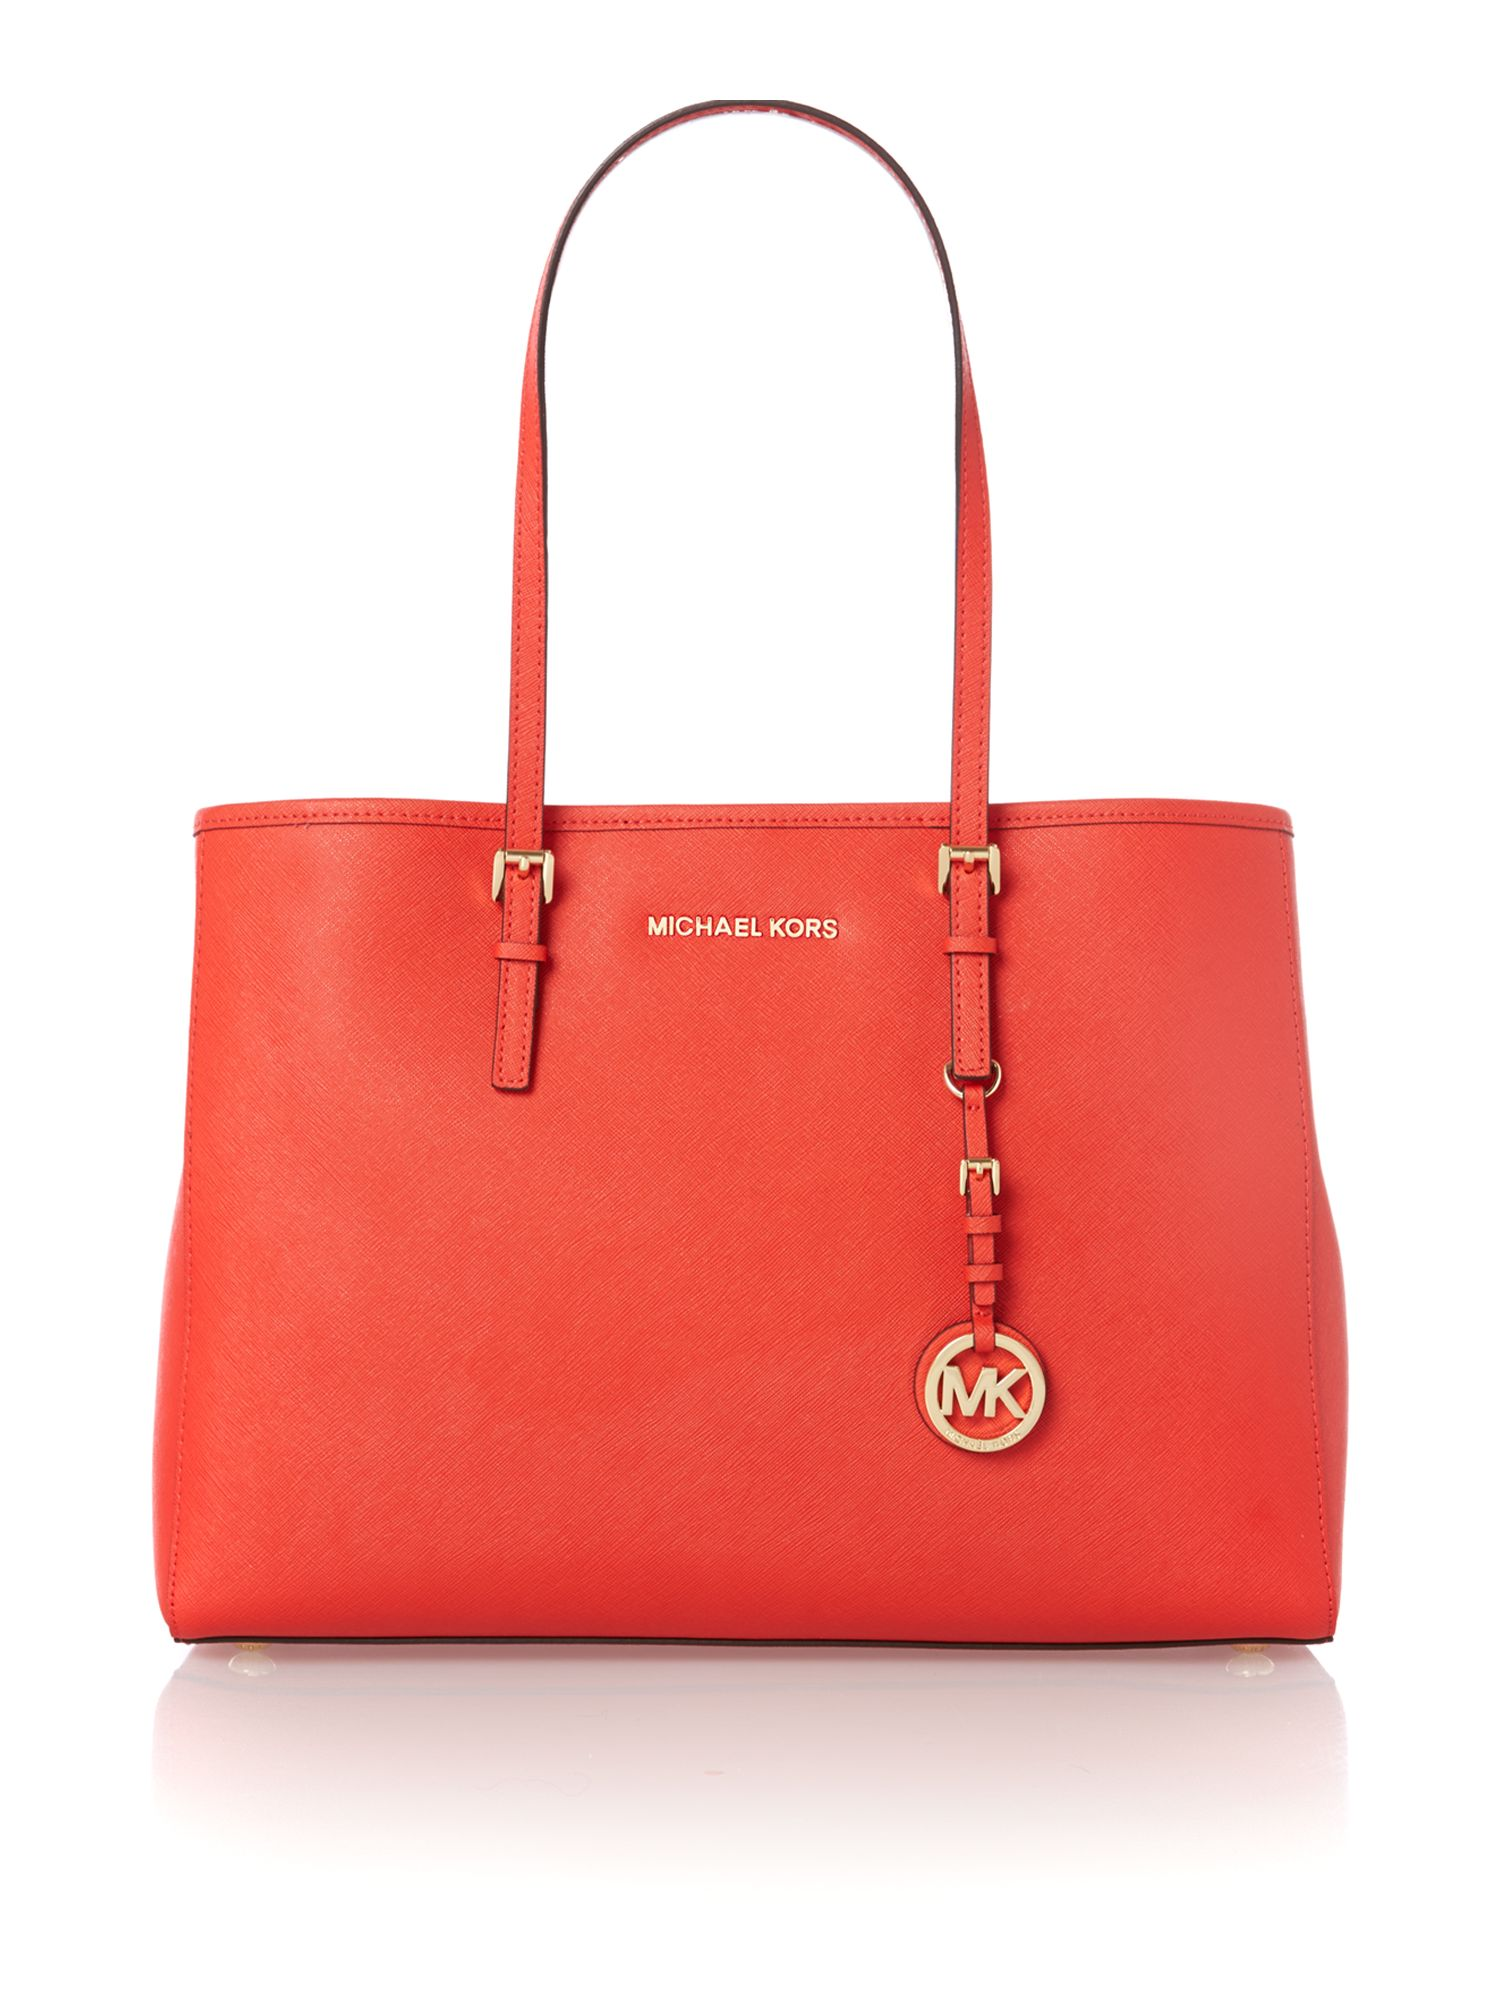 Jet set travel medium red tote bag